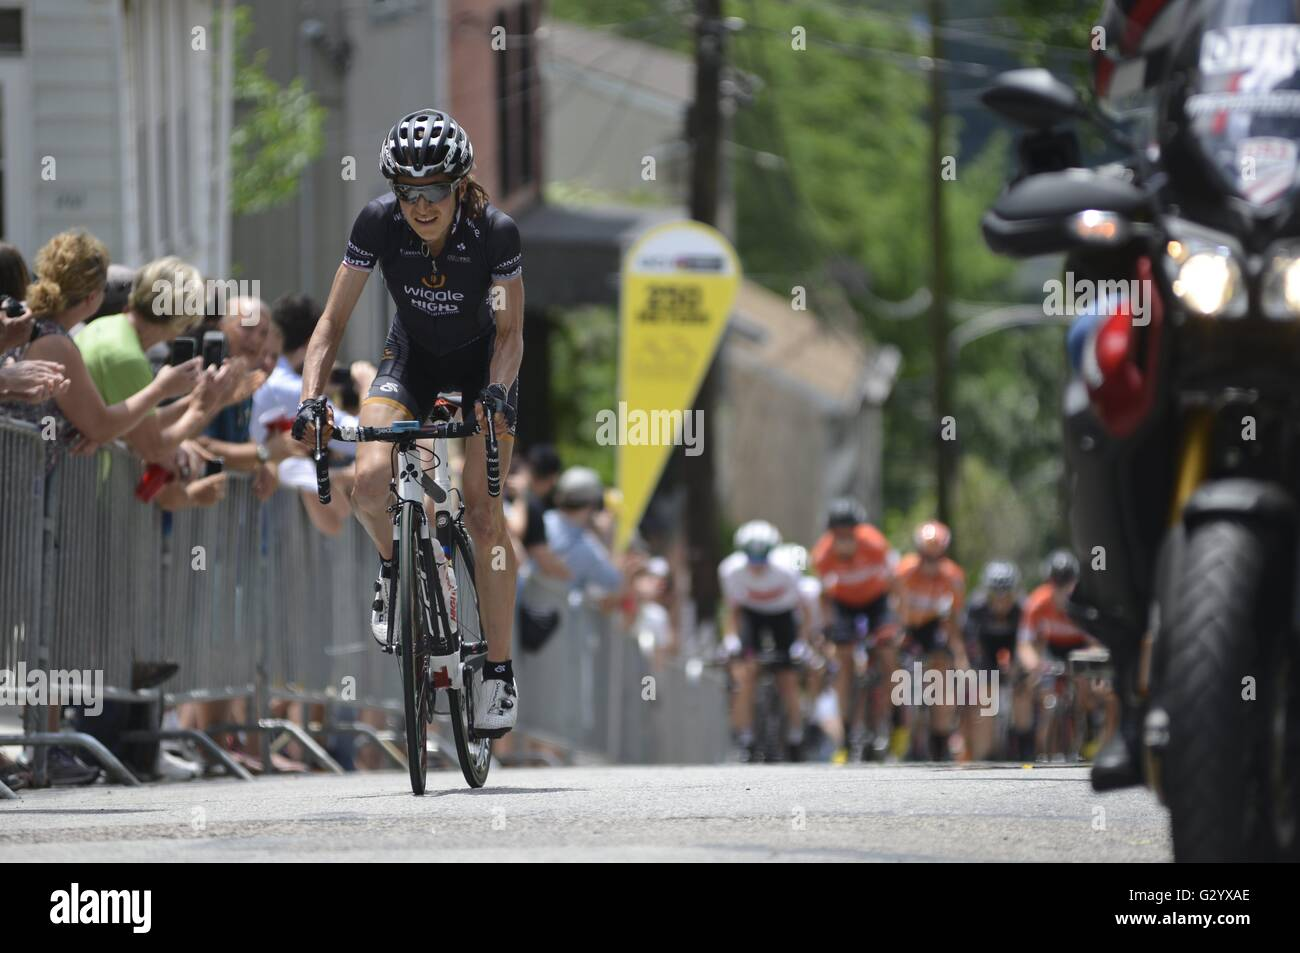 Philadelphia, Pennsylvania, USA. 5th June, 2016. ELISA LONGO BORGHINI of Italy, with team Wiggle high5 wins the Stock Photo